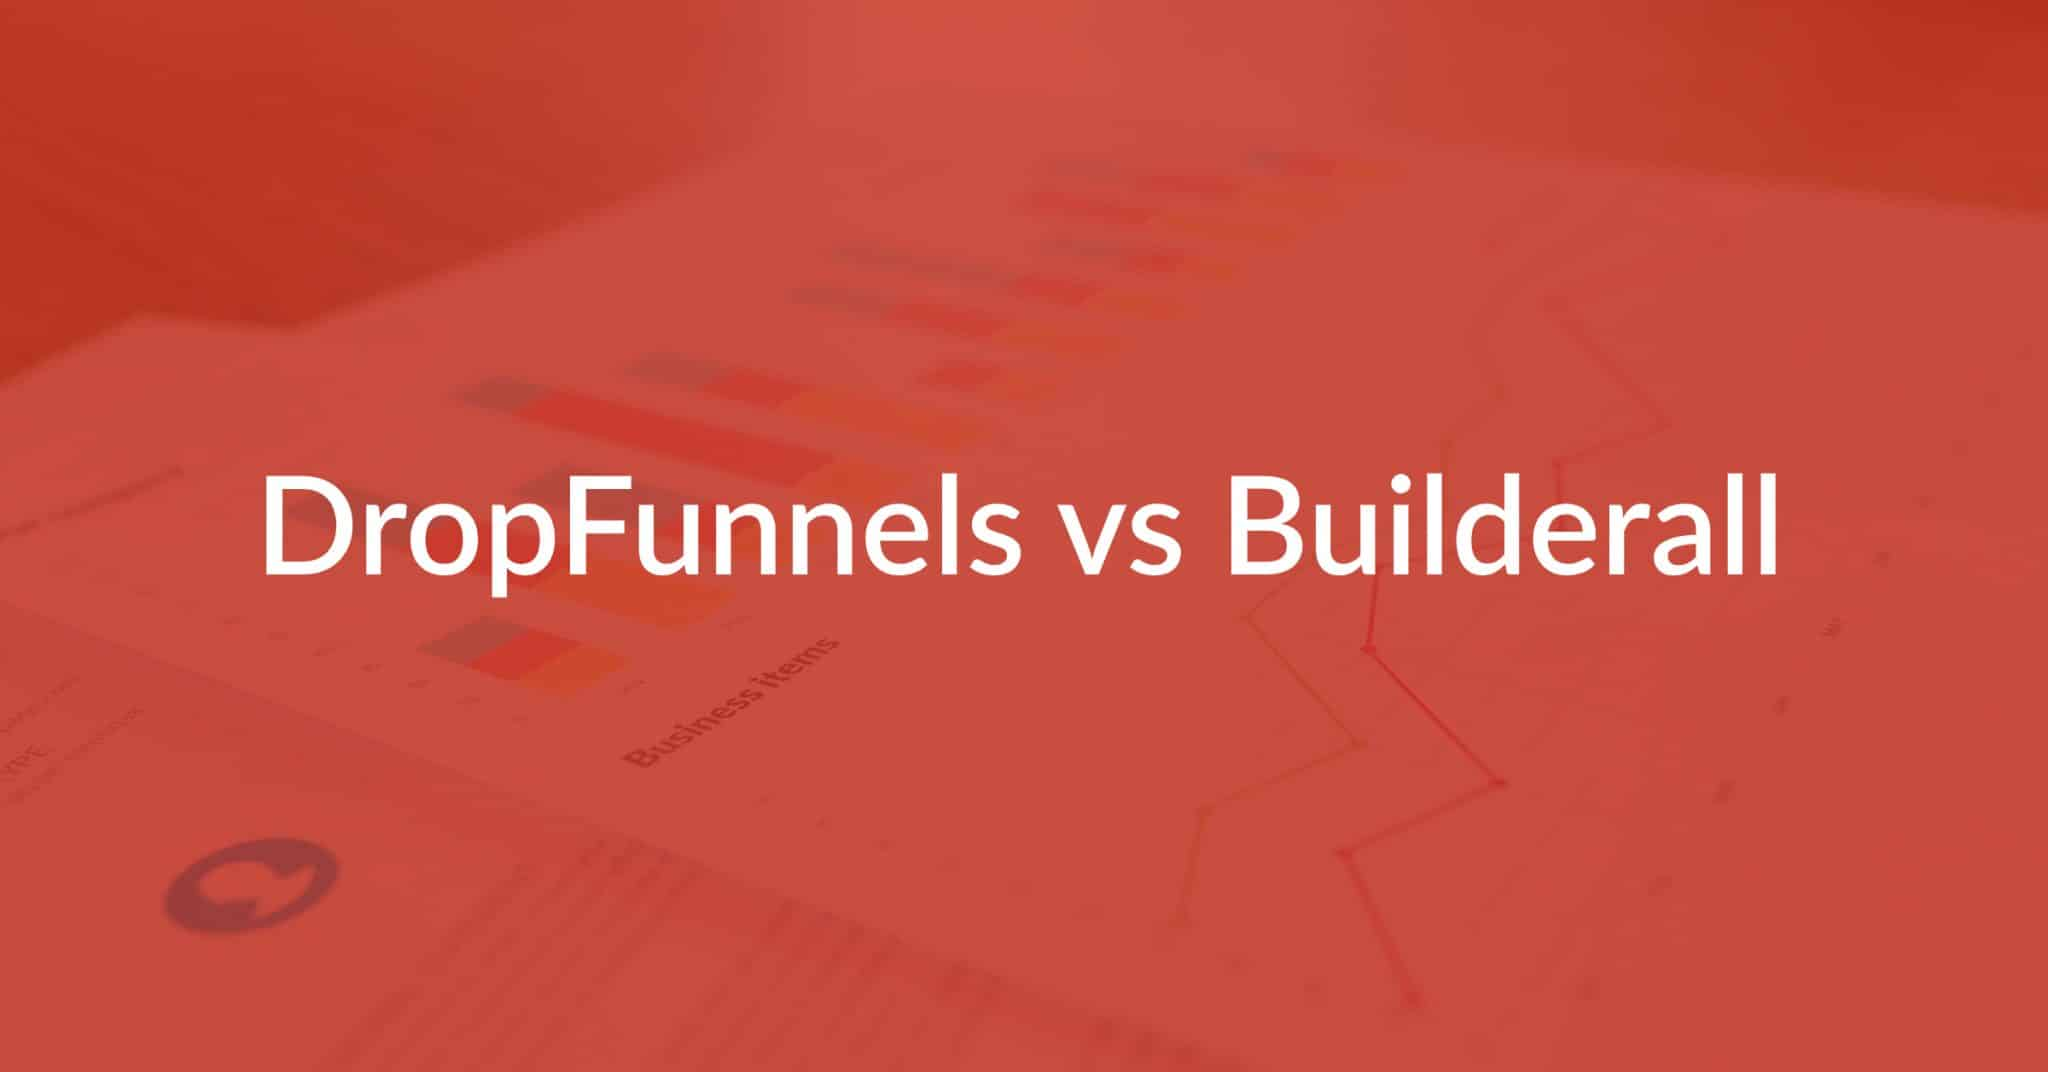 DropFunnels vs Builderall: Which Is Best For Your Business?